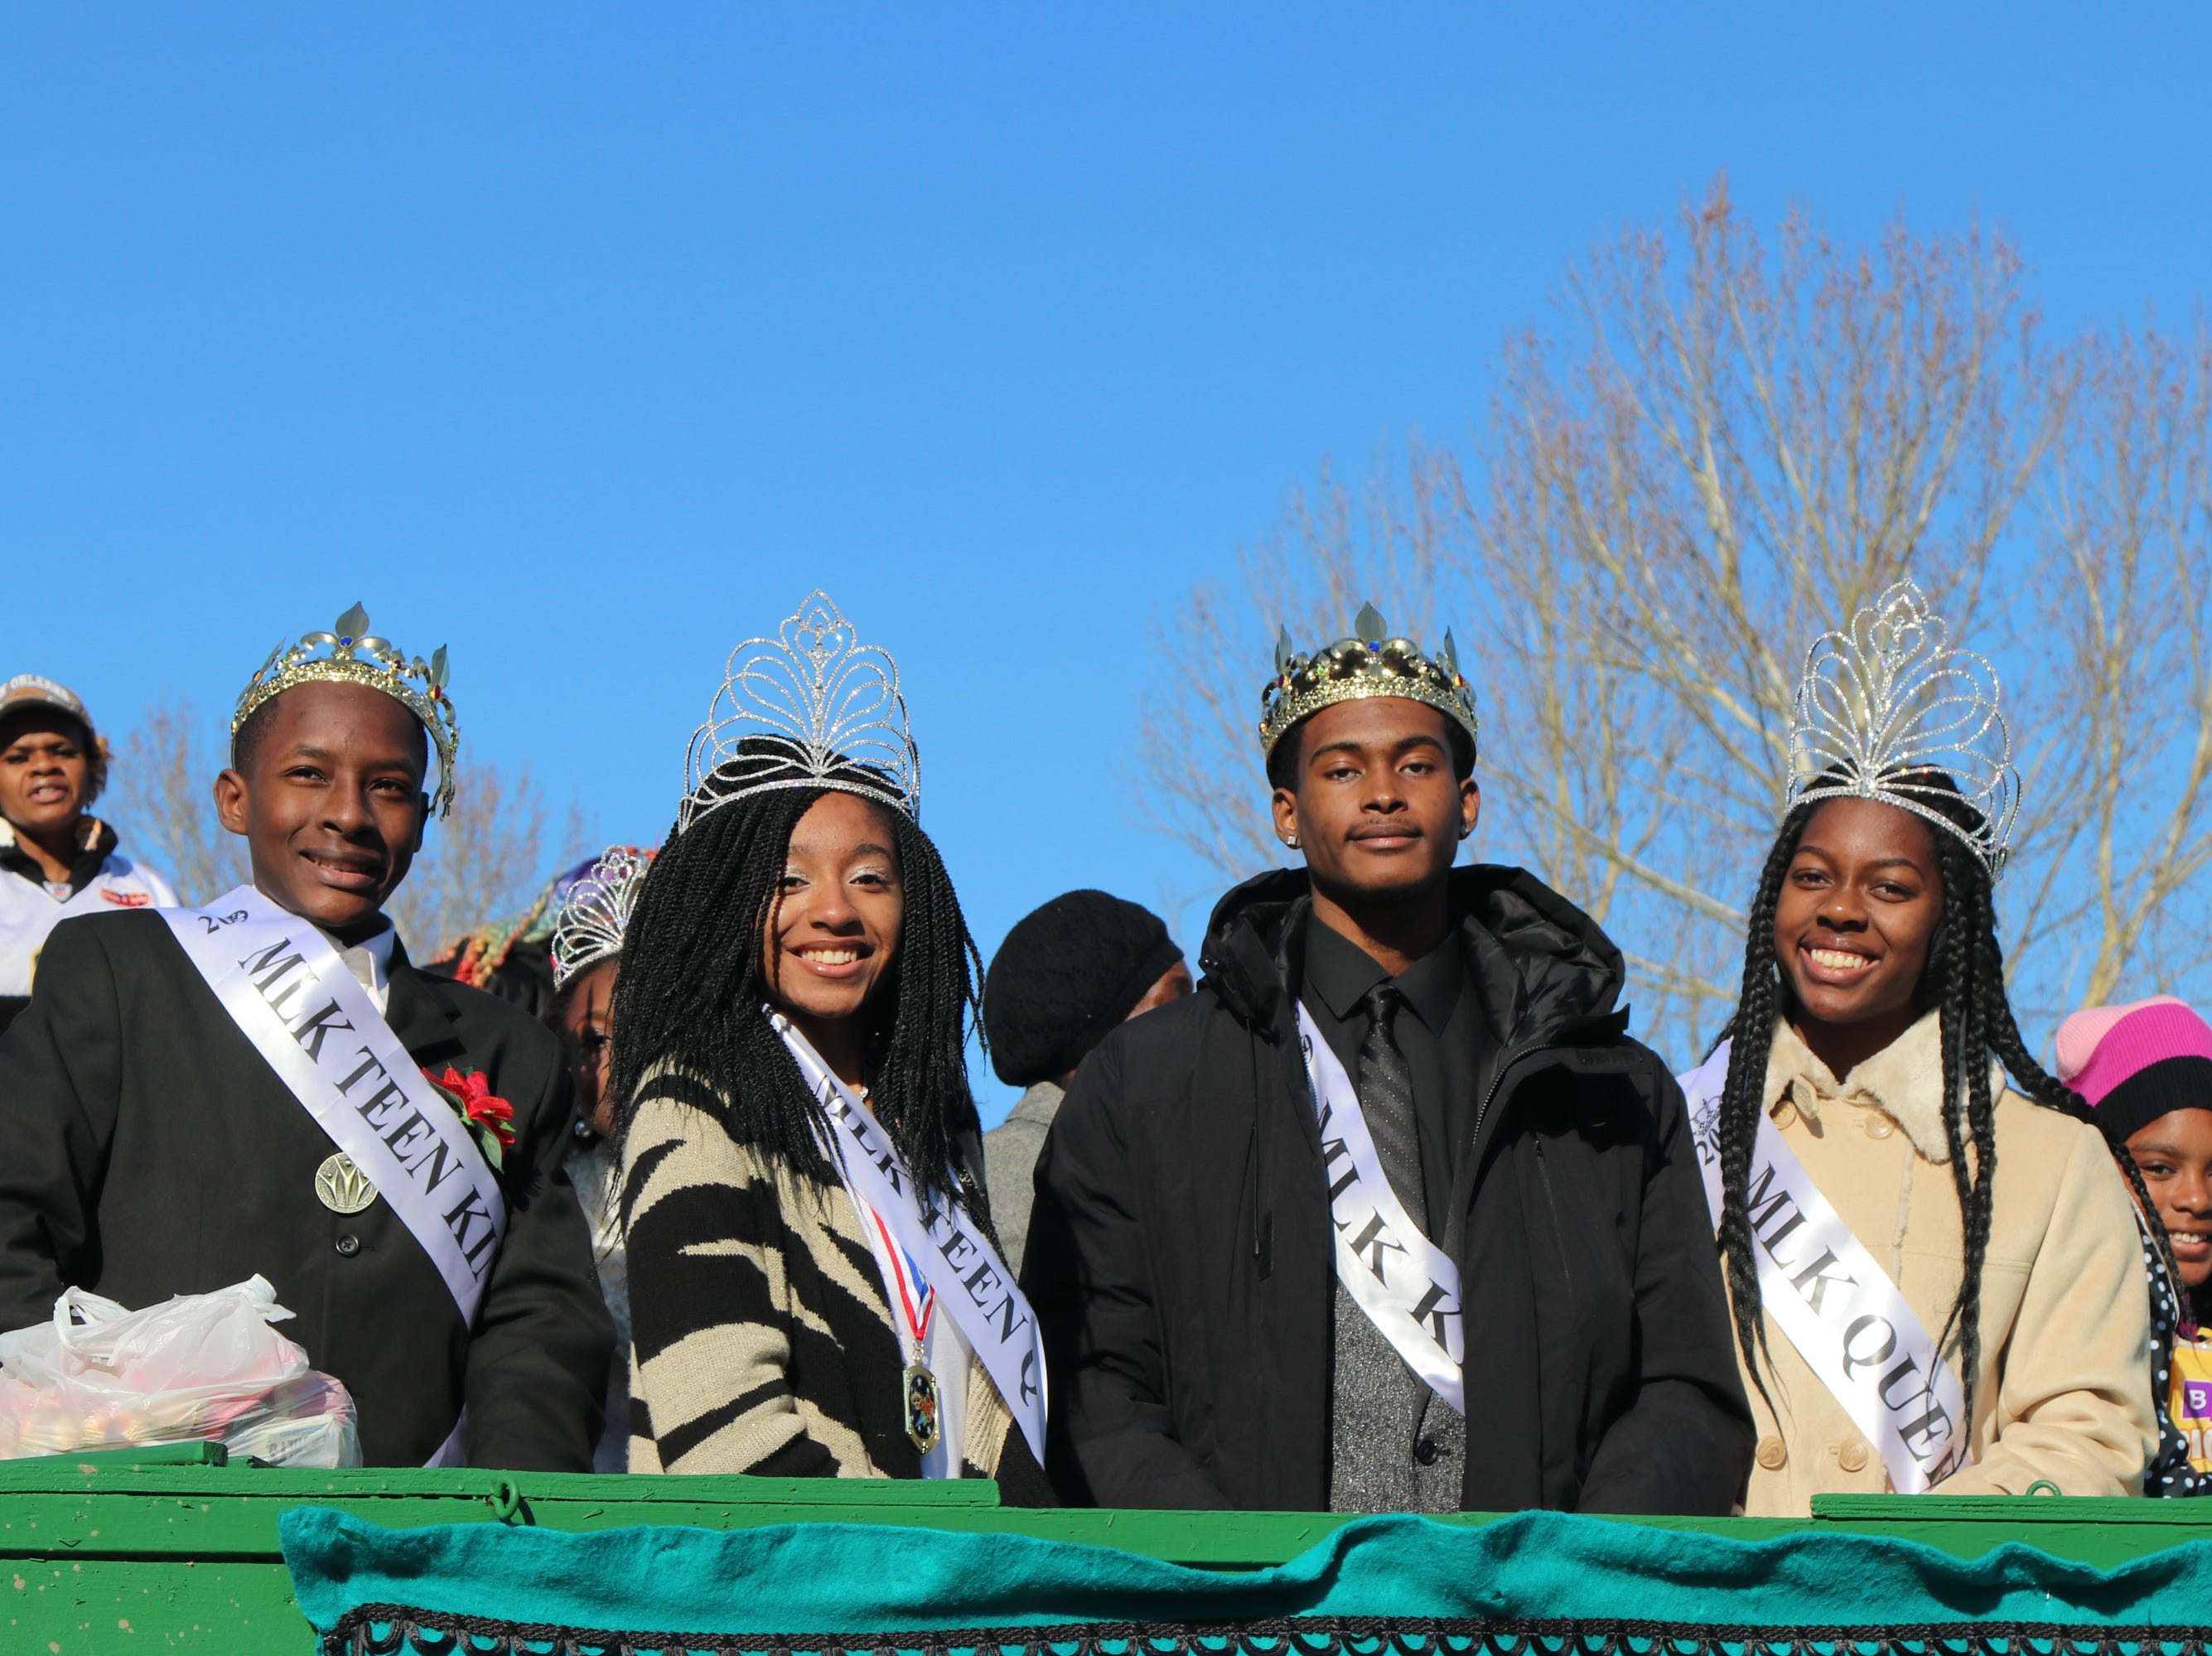 MLK Parade Royalty Sunday, Jan. 20, 2019.